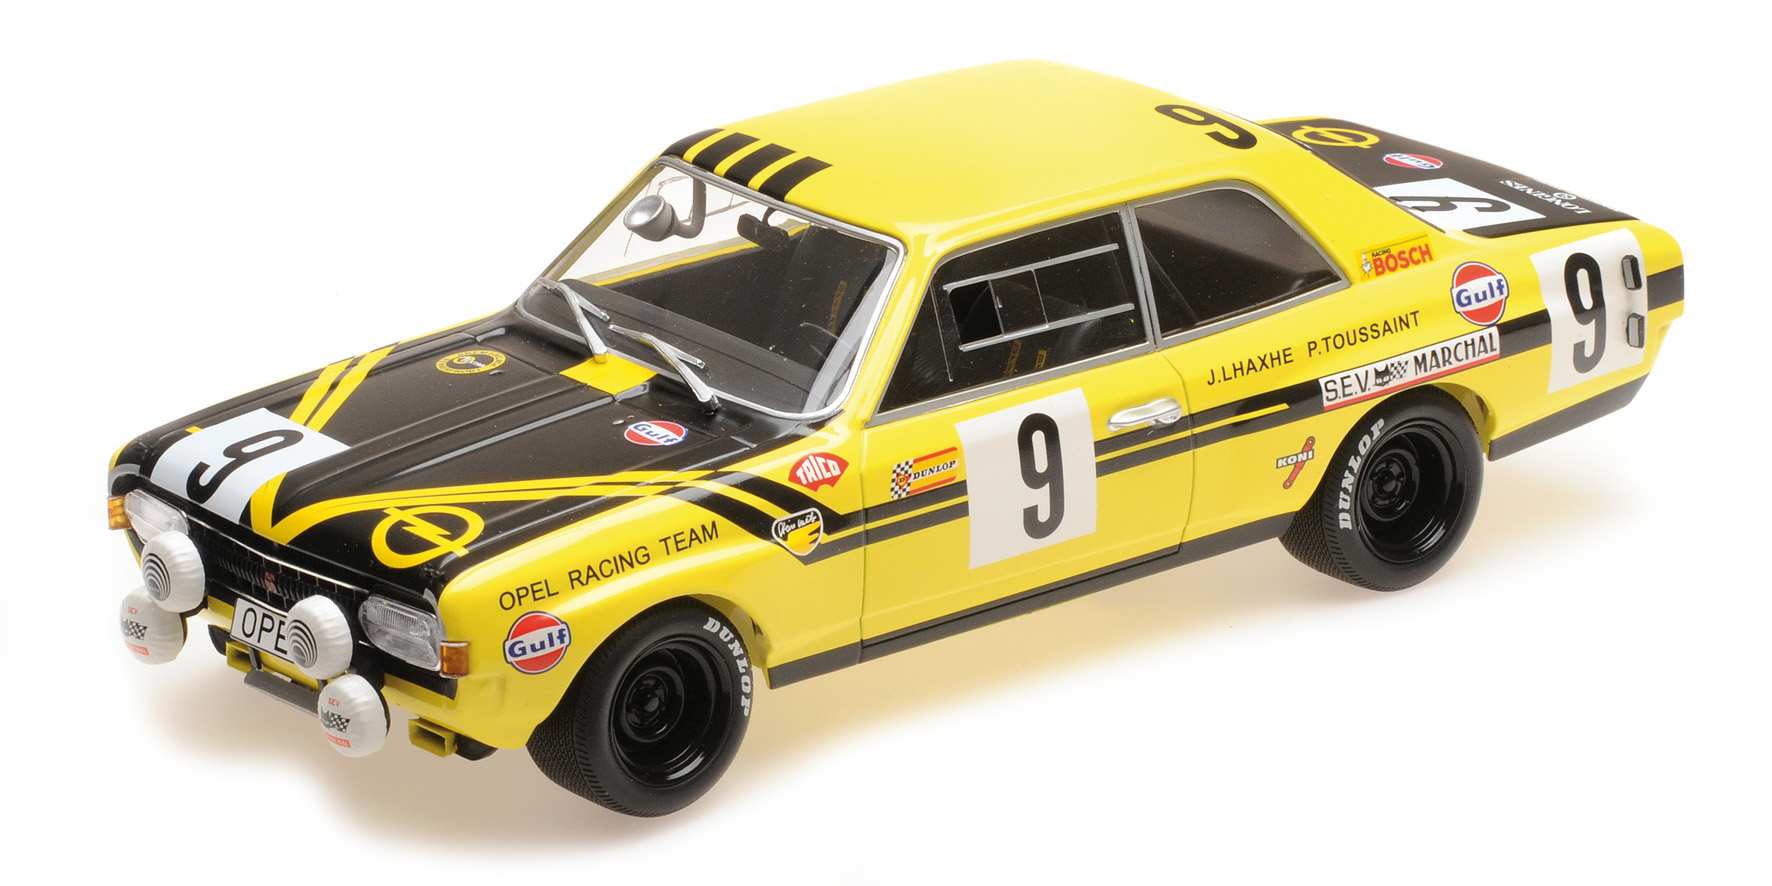 Opel Commodore A Spa 1970 Haxhe/Toussaint